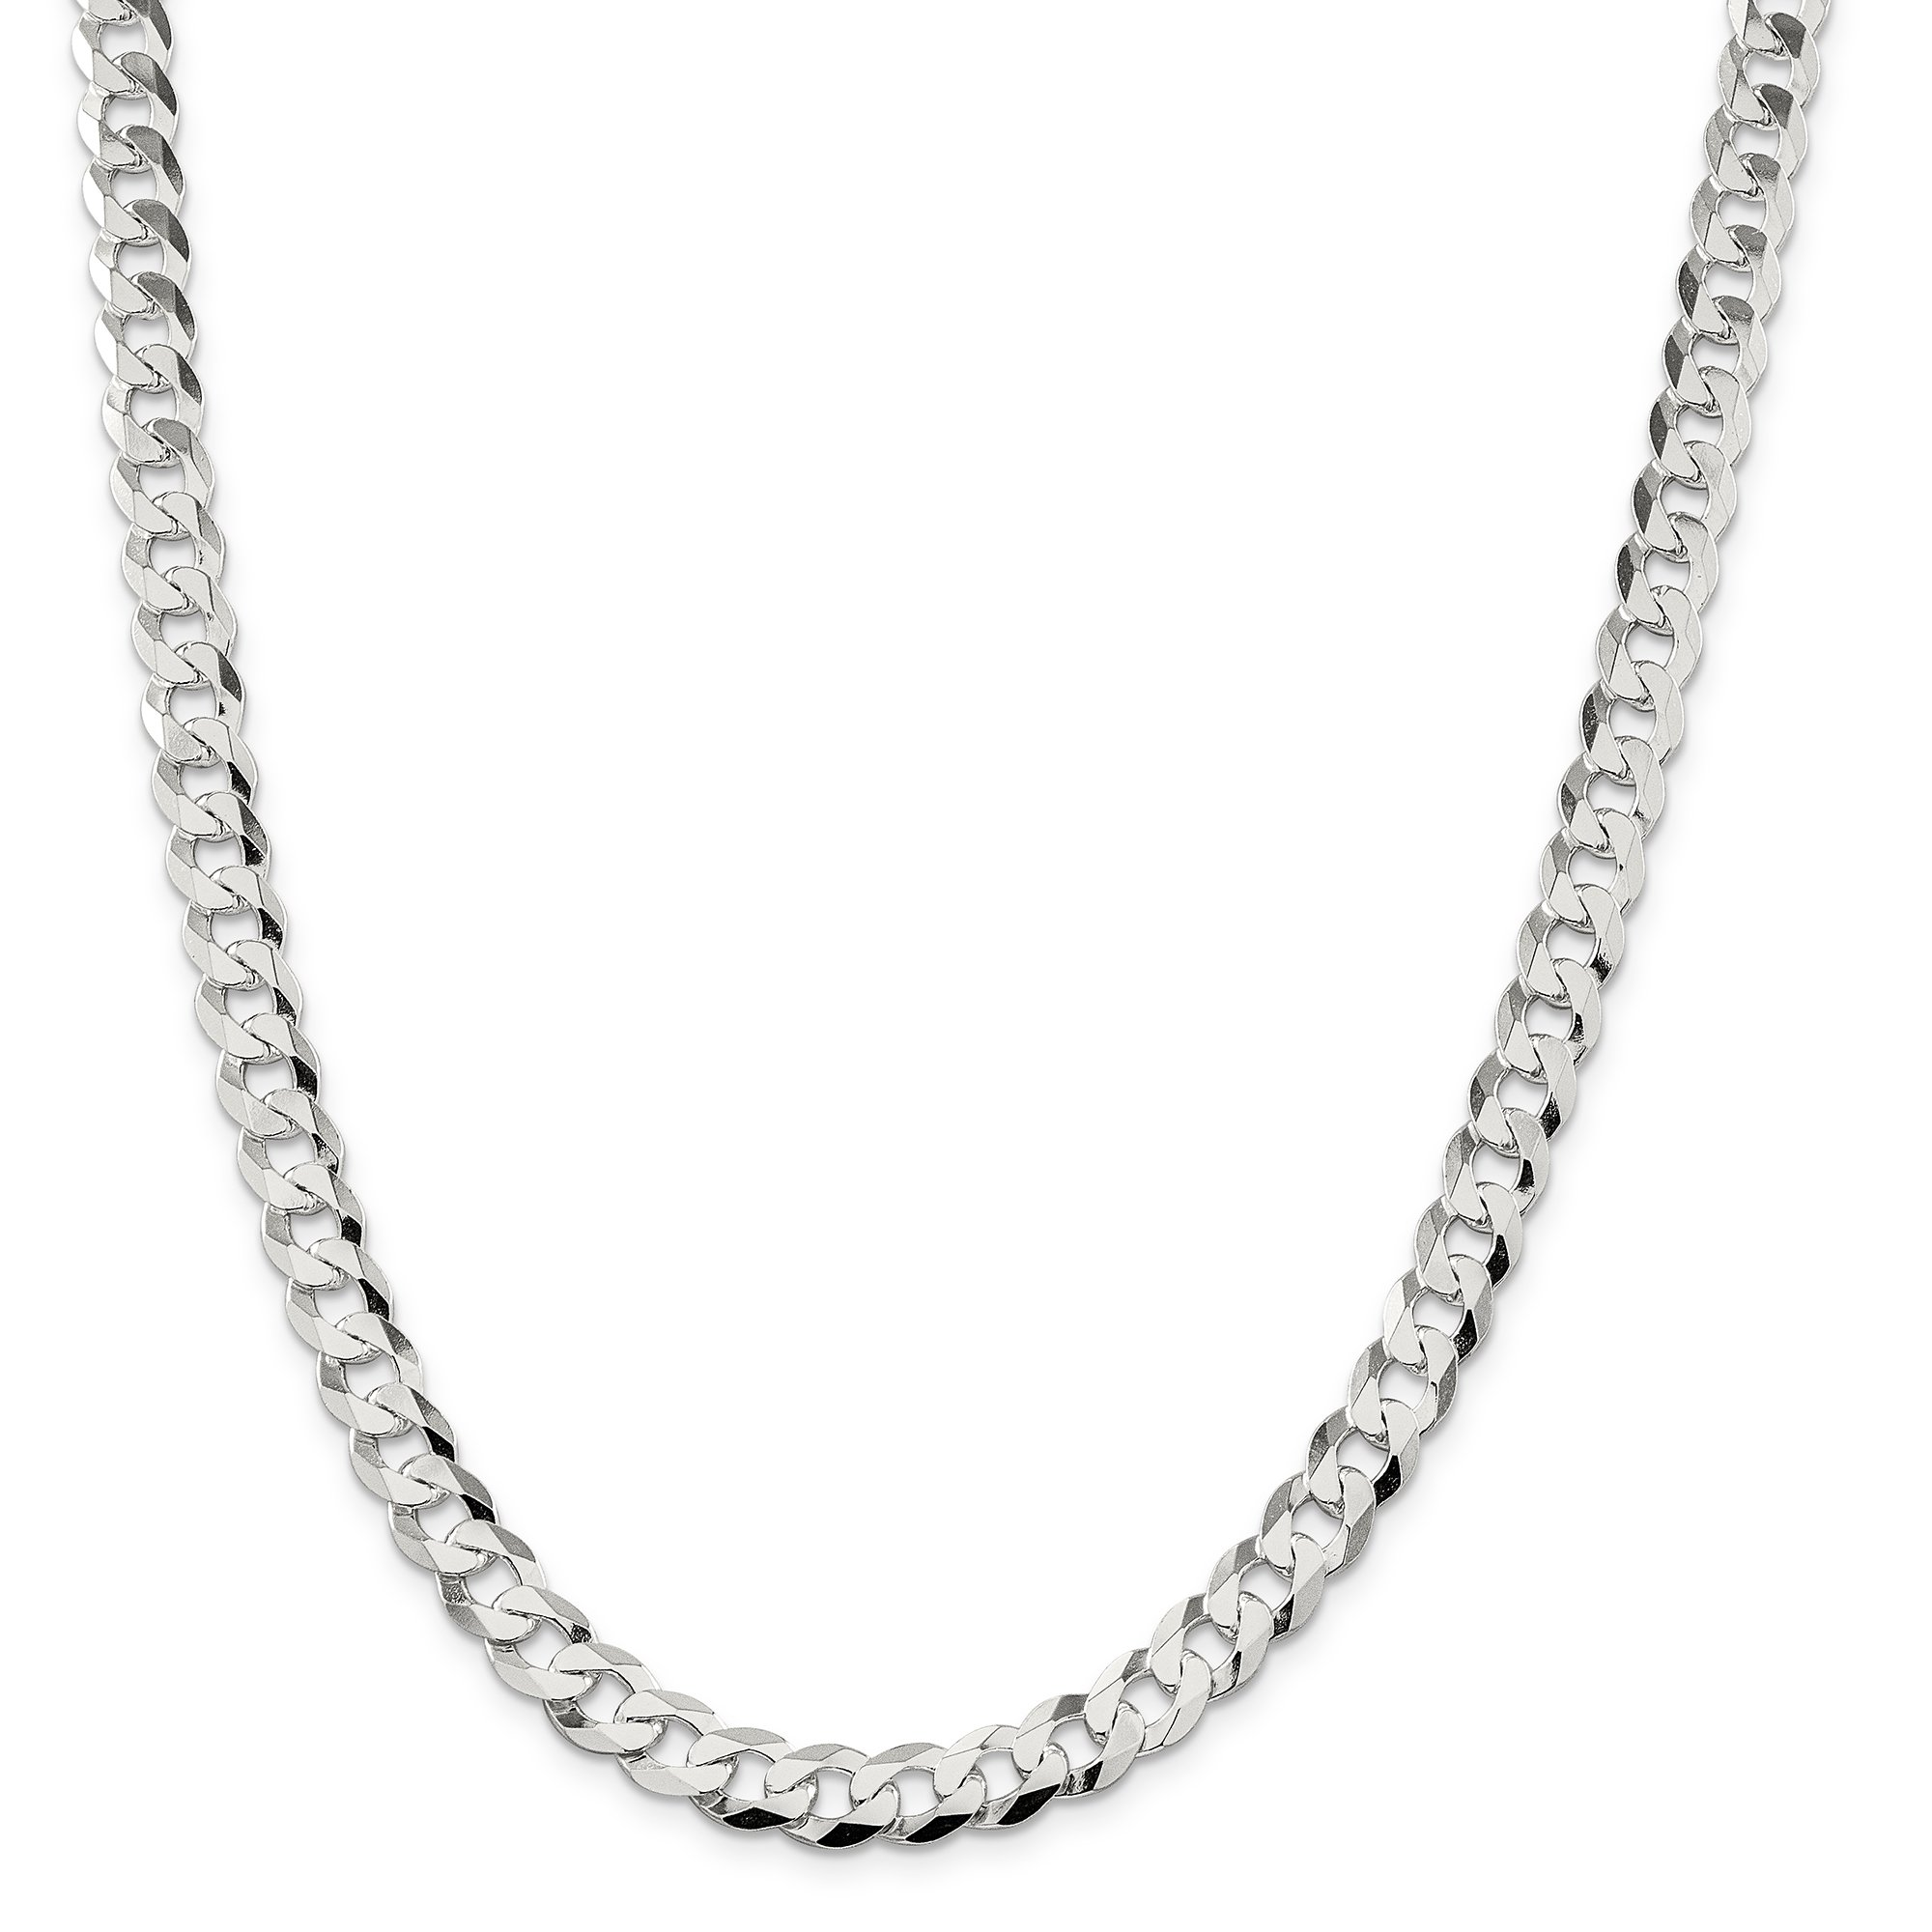 ICE CARATS 925 Sterling Silver 8.5mm Close Link Flat Curb Chain Necklace 18 Inch Fine Jewelry Gift Set For Women Heart